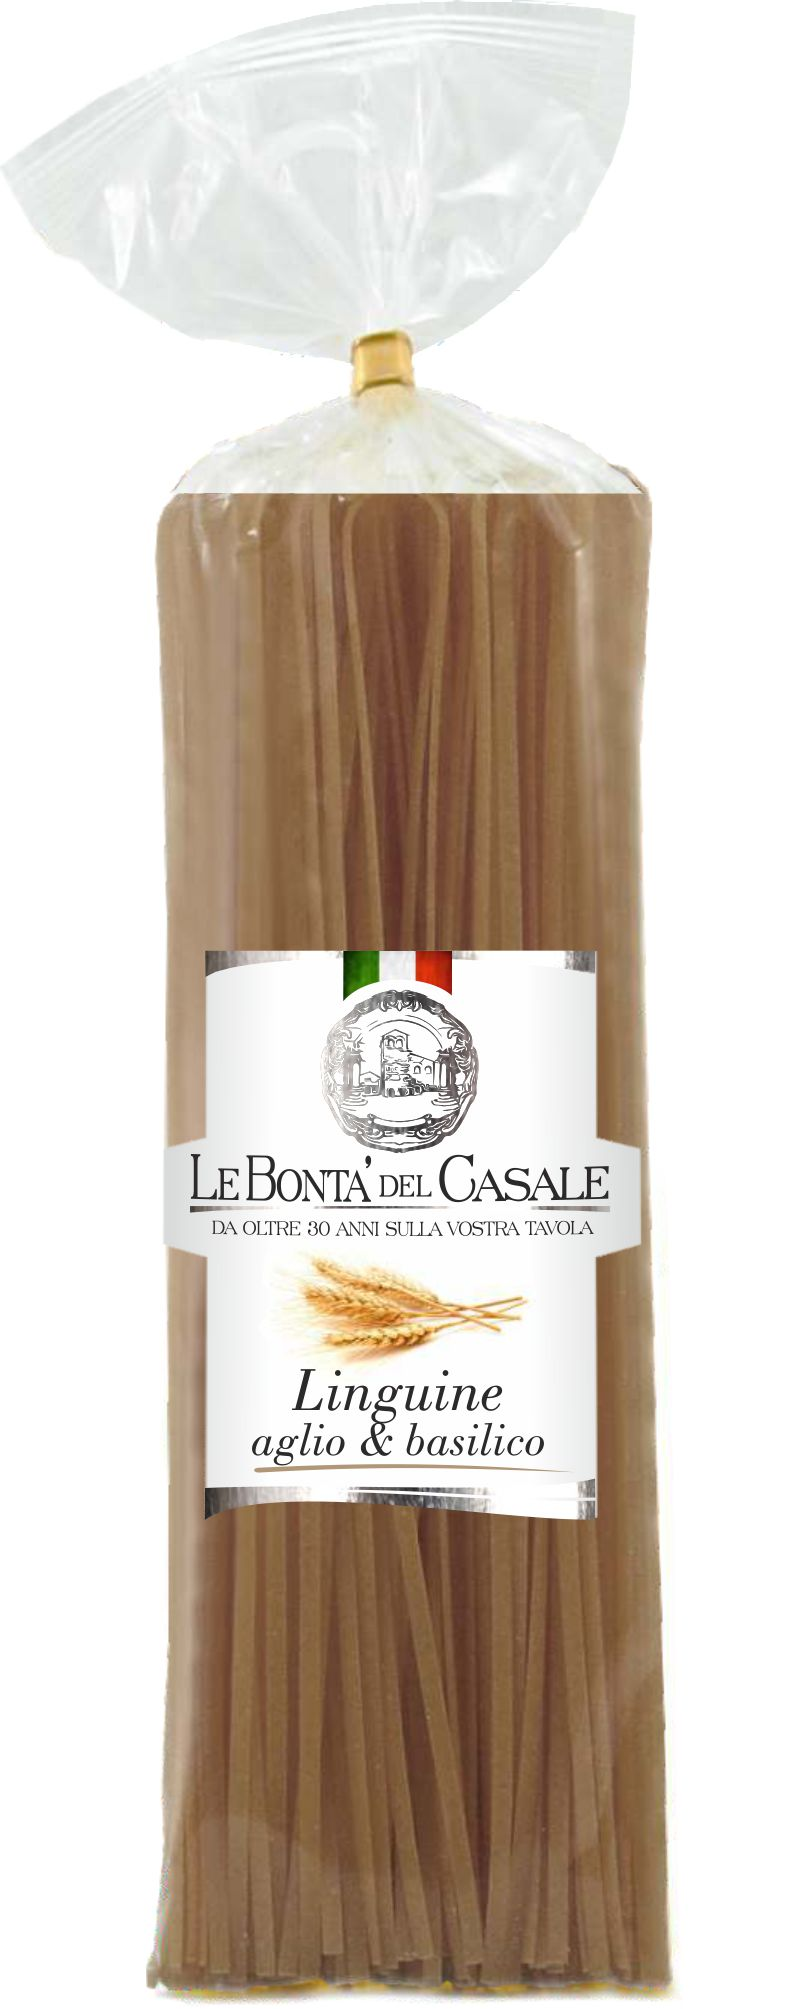 Linguine garlic and basil flavored